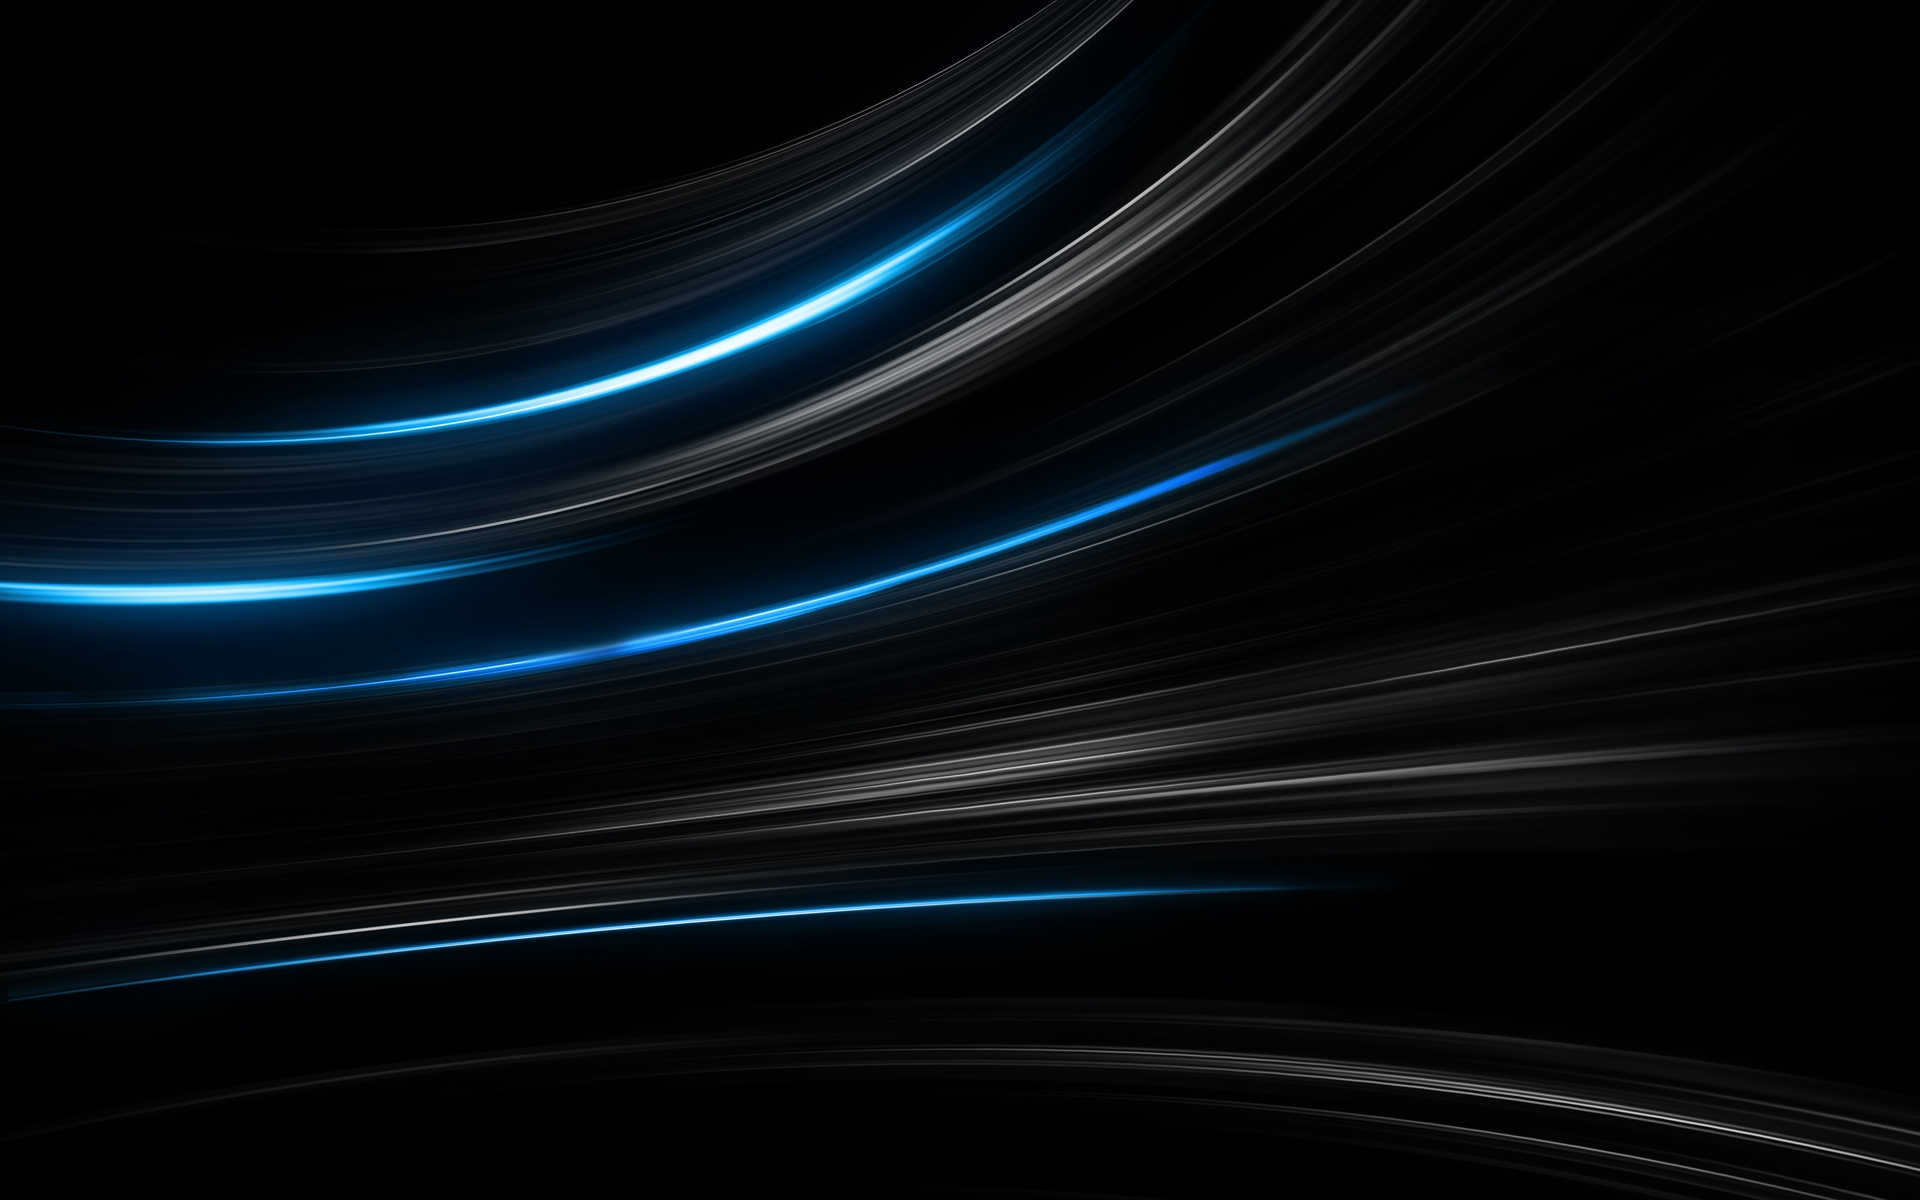 Flow Of Glow Wallpapers In Jpg Format For Free Download